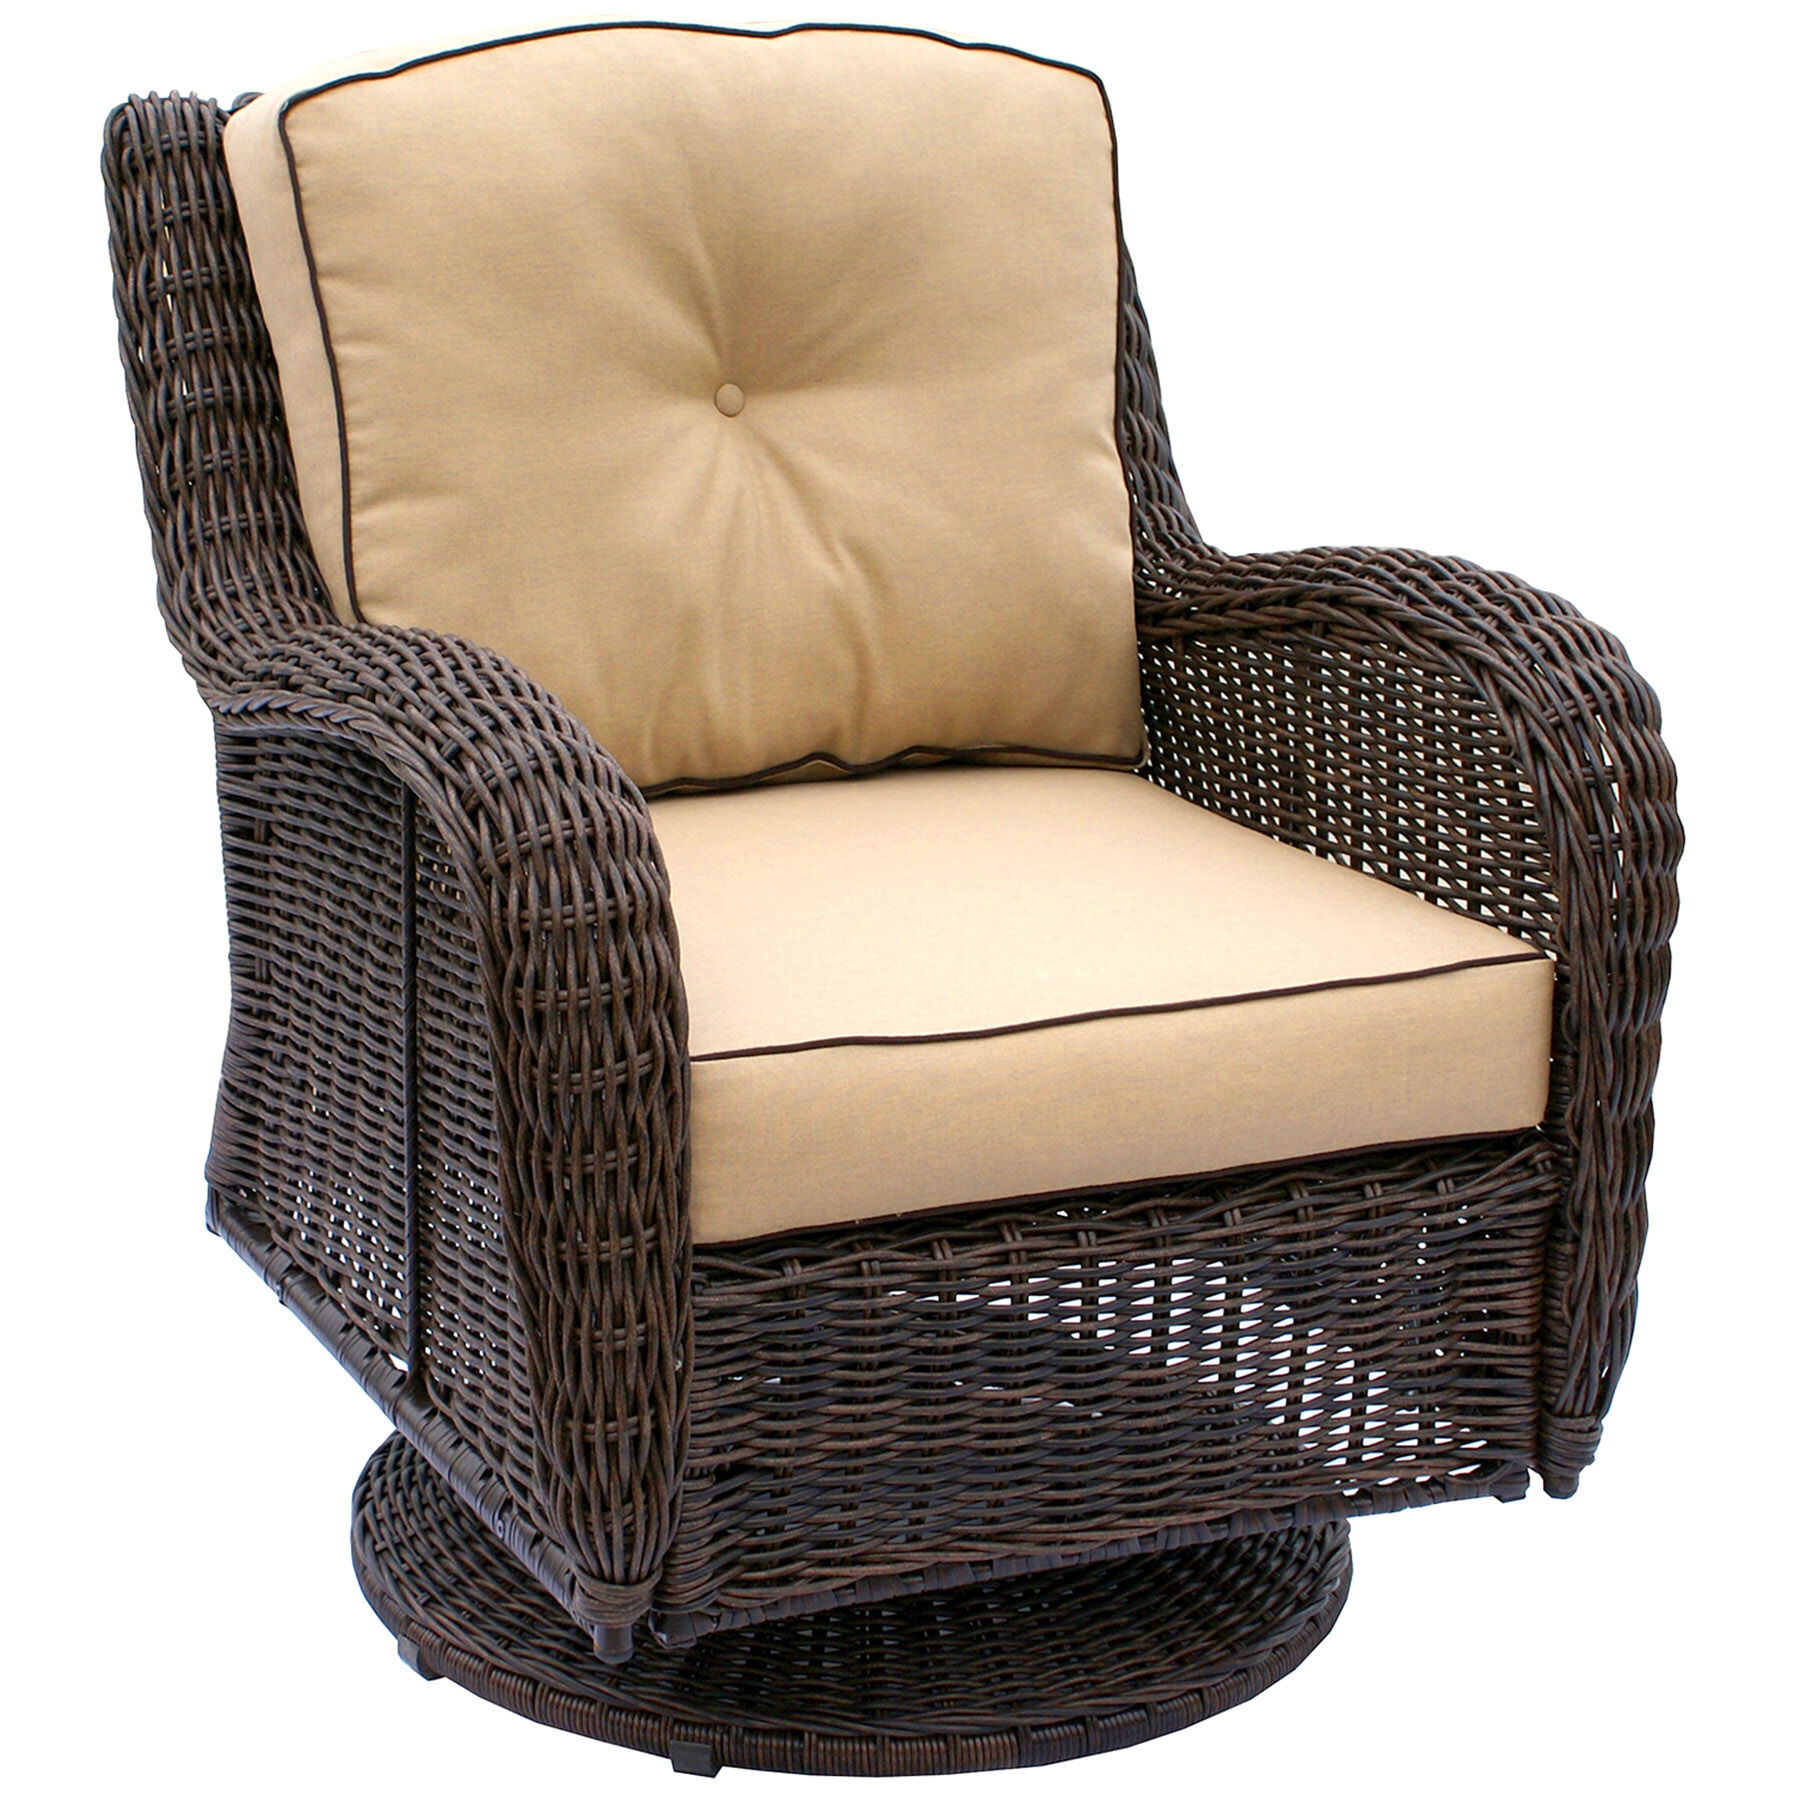 Grand Isle Brown Wicker Swivel Chair At Home - Garden Furniture Clearance Ware